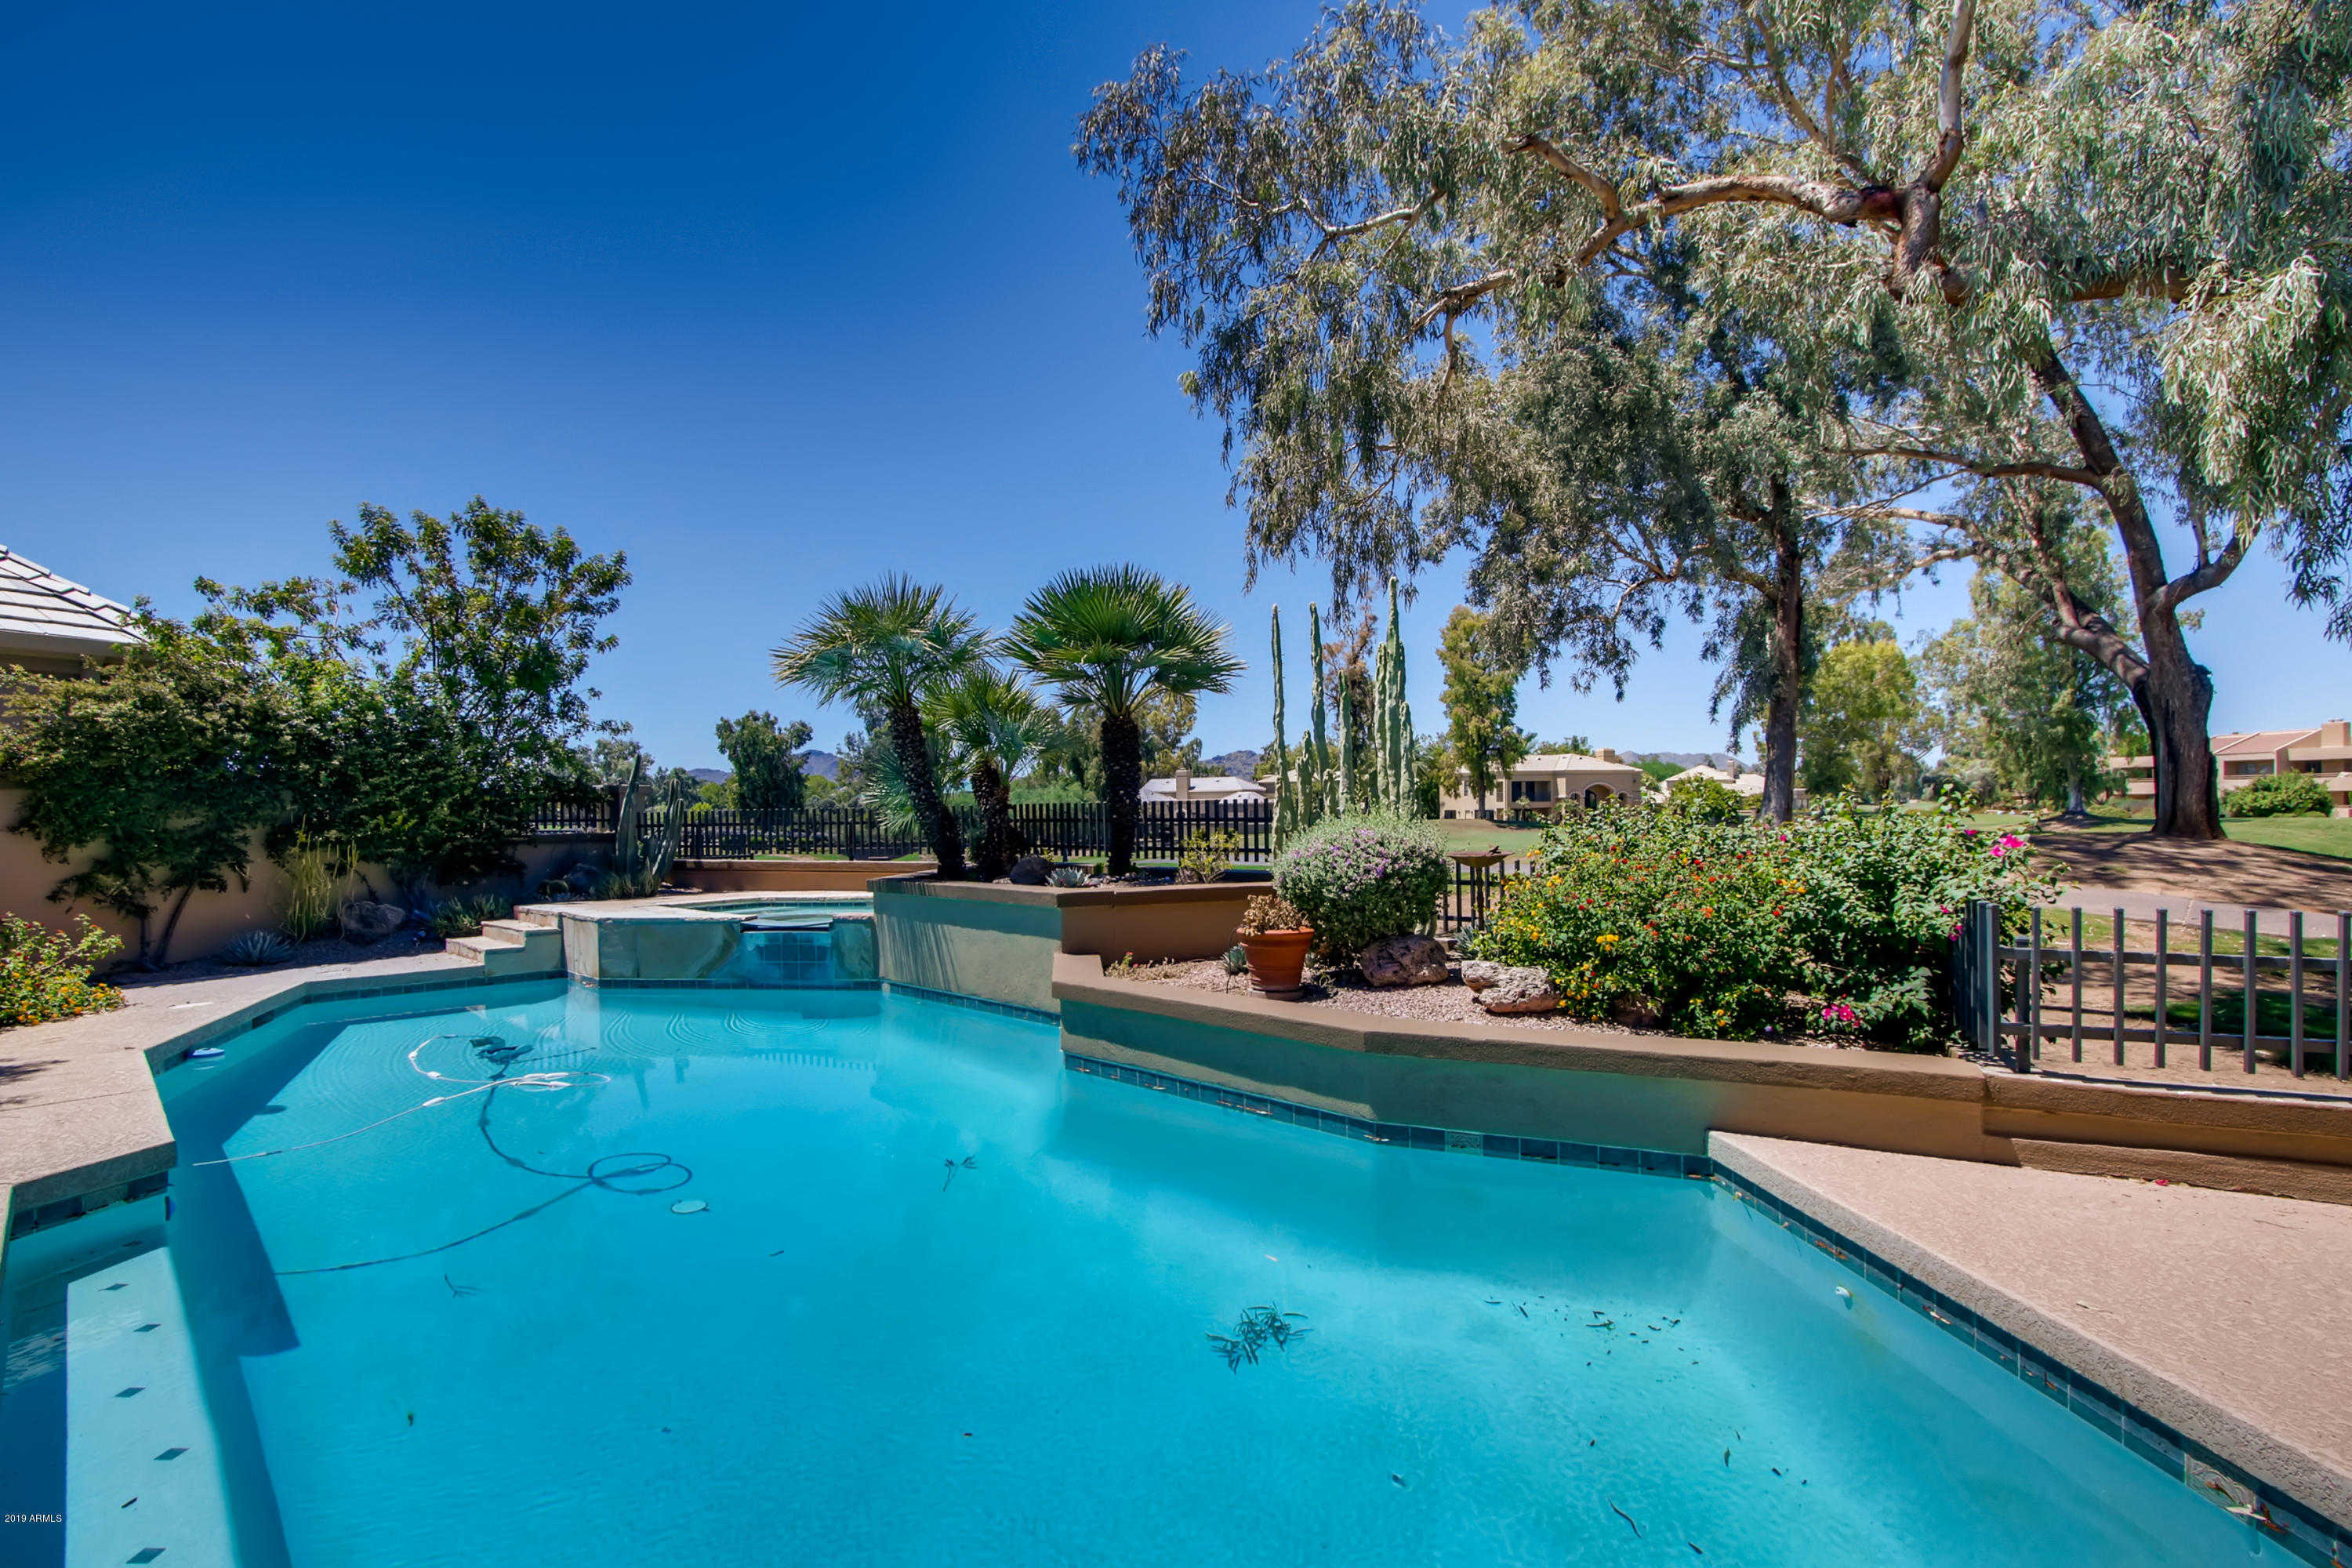 $1,275,000 - 4Br/4Ba - Home for Sale in Gainey Ranch, Scottsdale